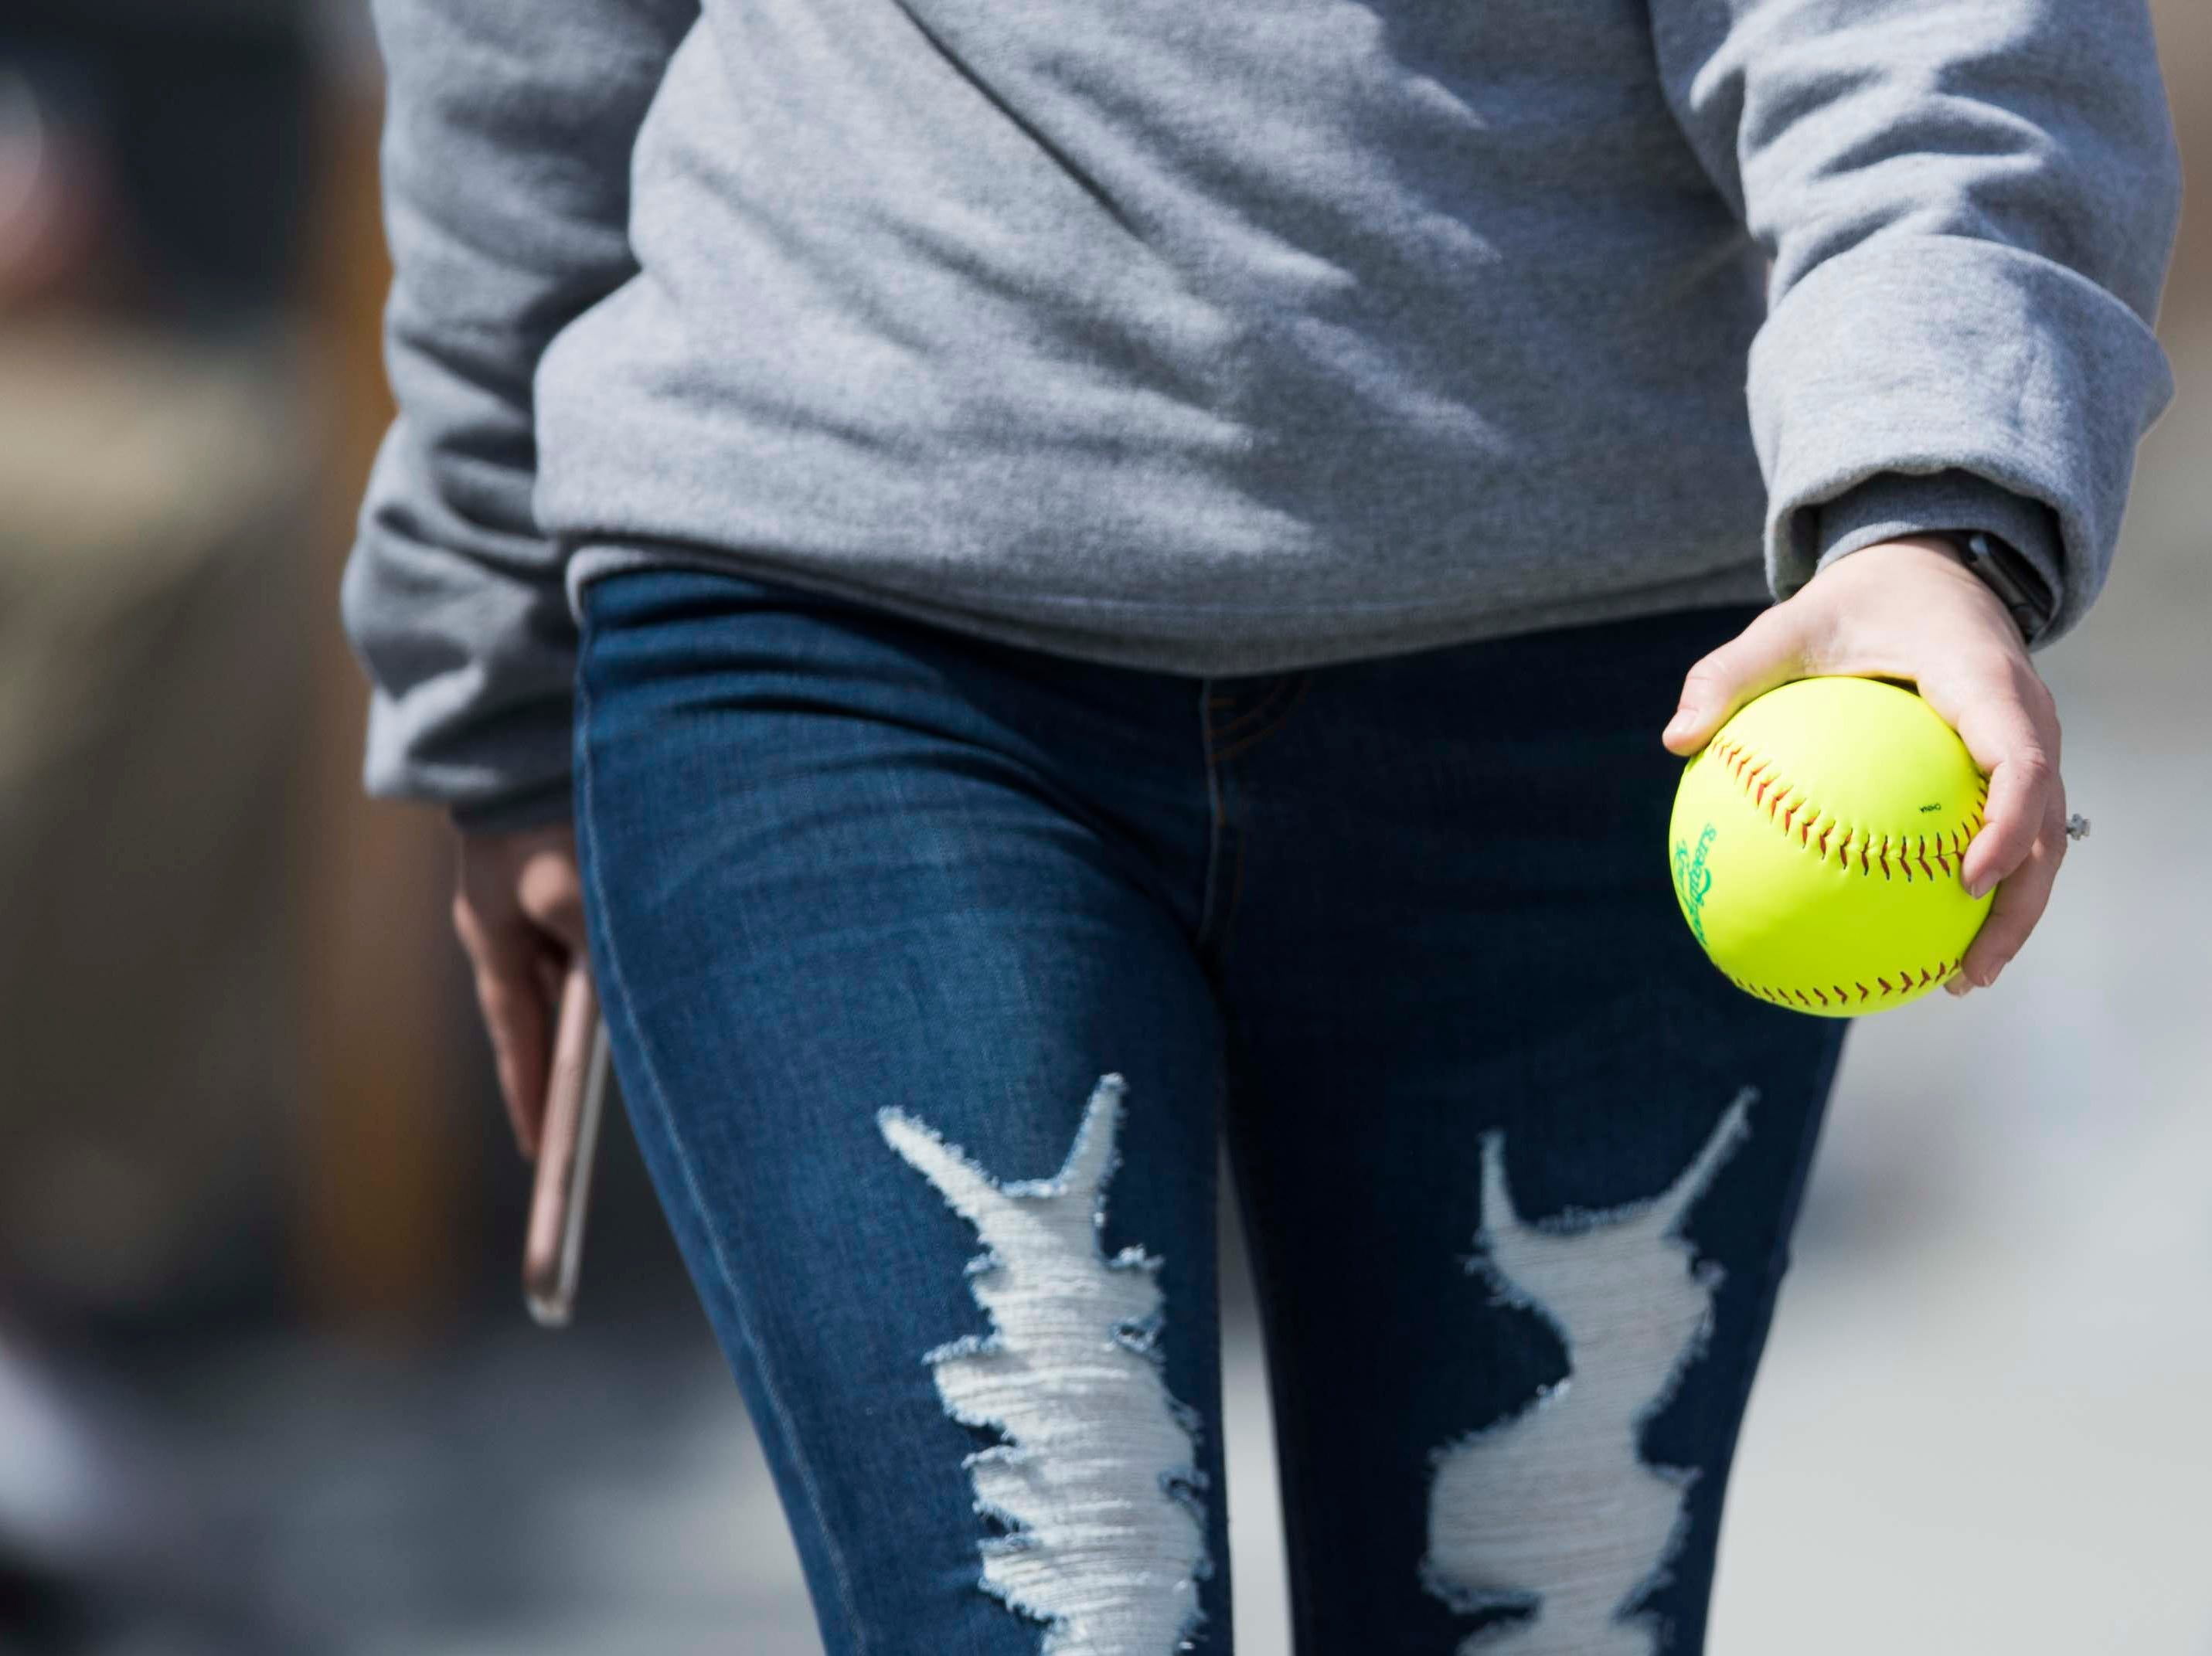 A fan holds a Lady Vols softball during a Lady Vols softball game against Arkansas at Sherri Parker Lee stadium on University of Tennessee's campus in Knoxville Sunday, March 24, 2019. The Lady Vols defeated Arkansas.